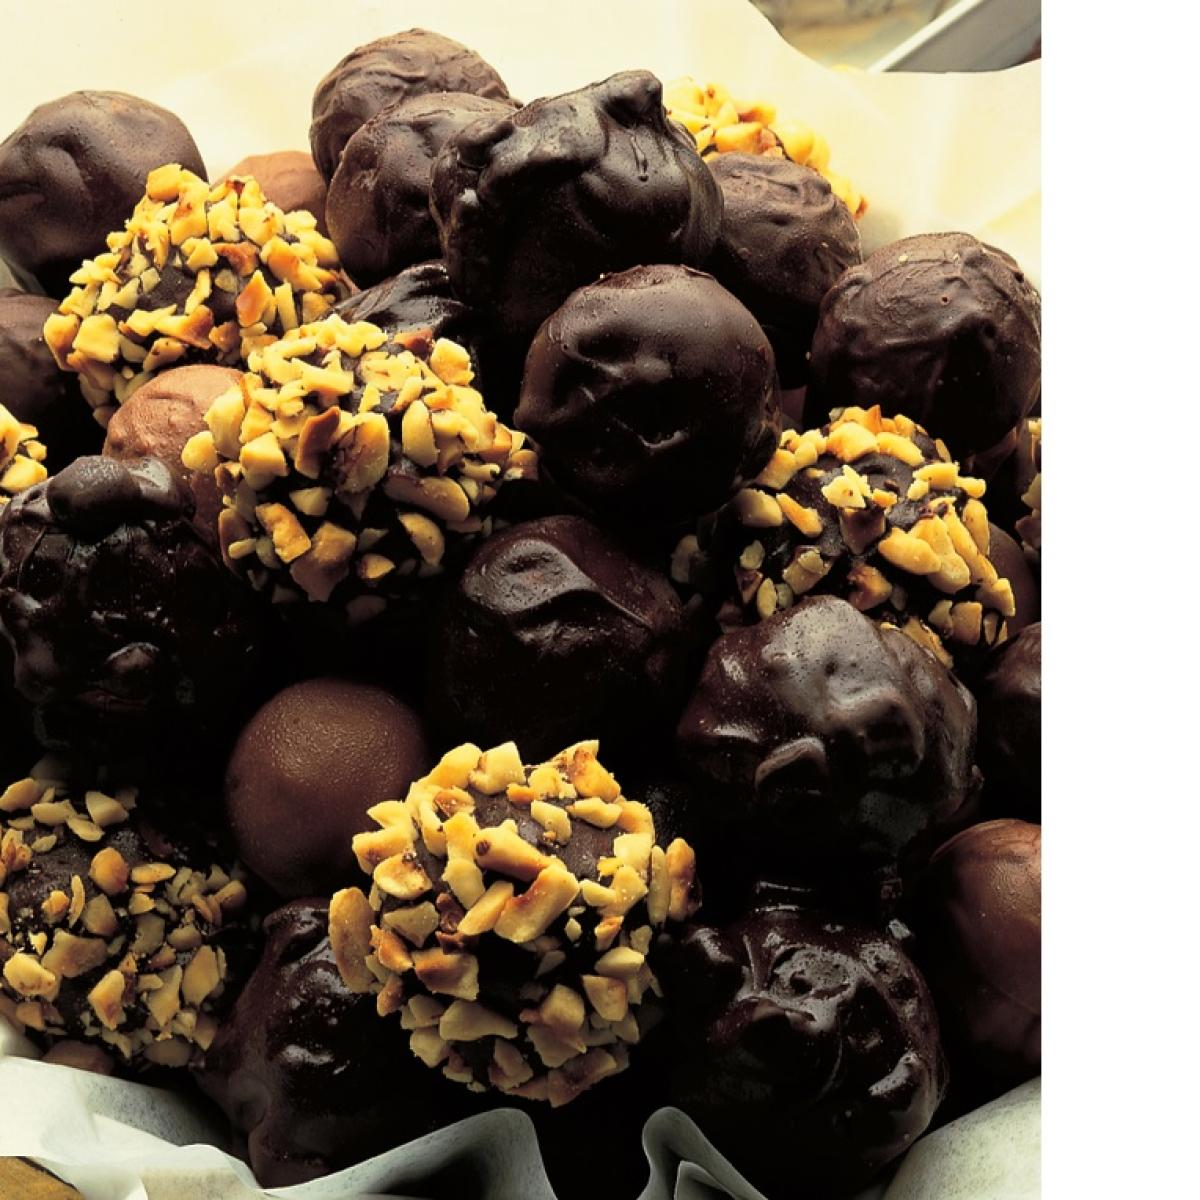 A picture of Delia's Home-made Chocolate Truffles recipe